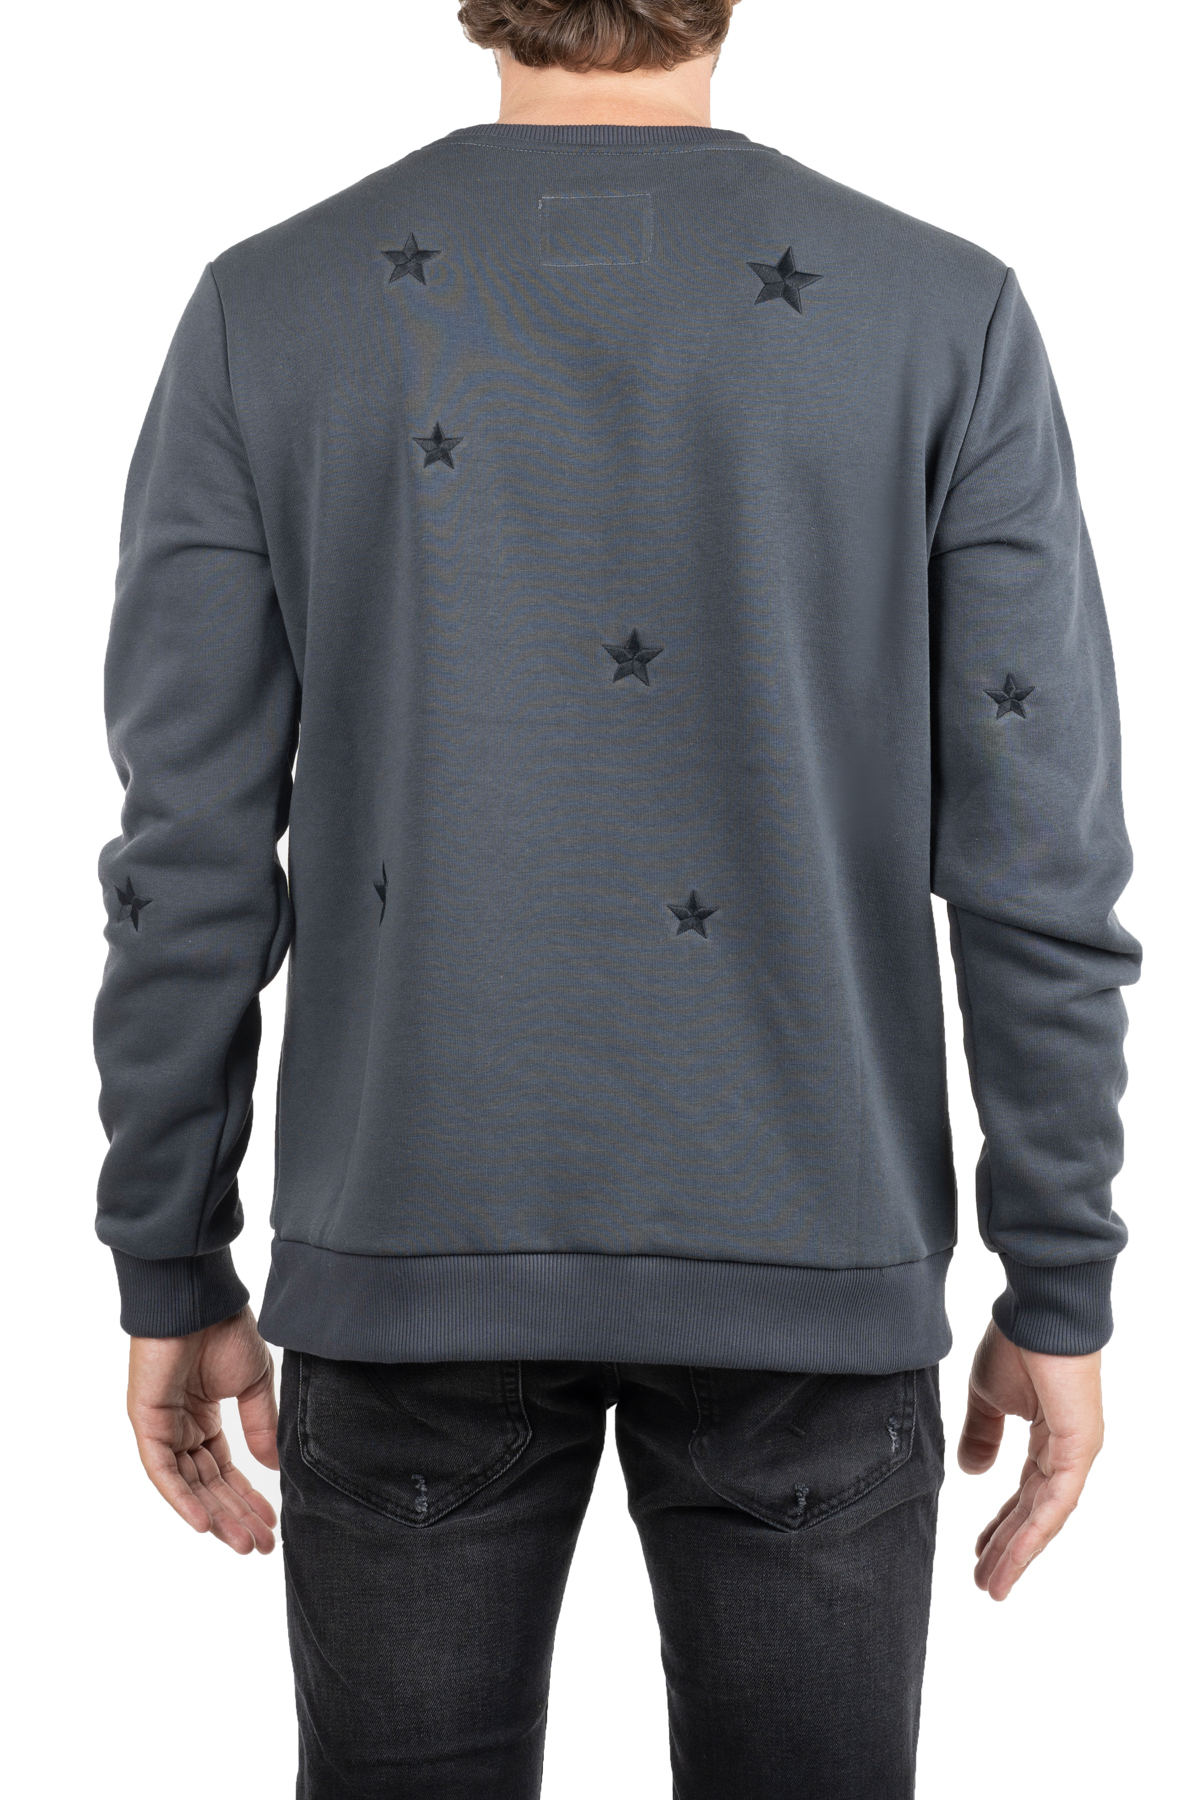 GRAY COTTON SWEATSHIRT WITH FRONT BACK APPLICATIONS THE EDITOR | Sweatshirts | E706A38N6120089